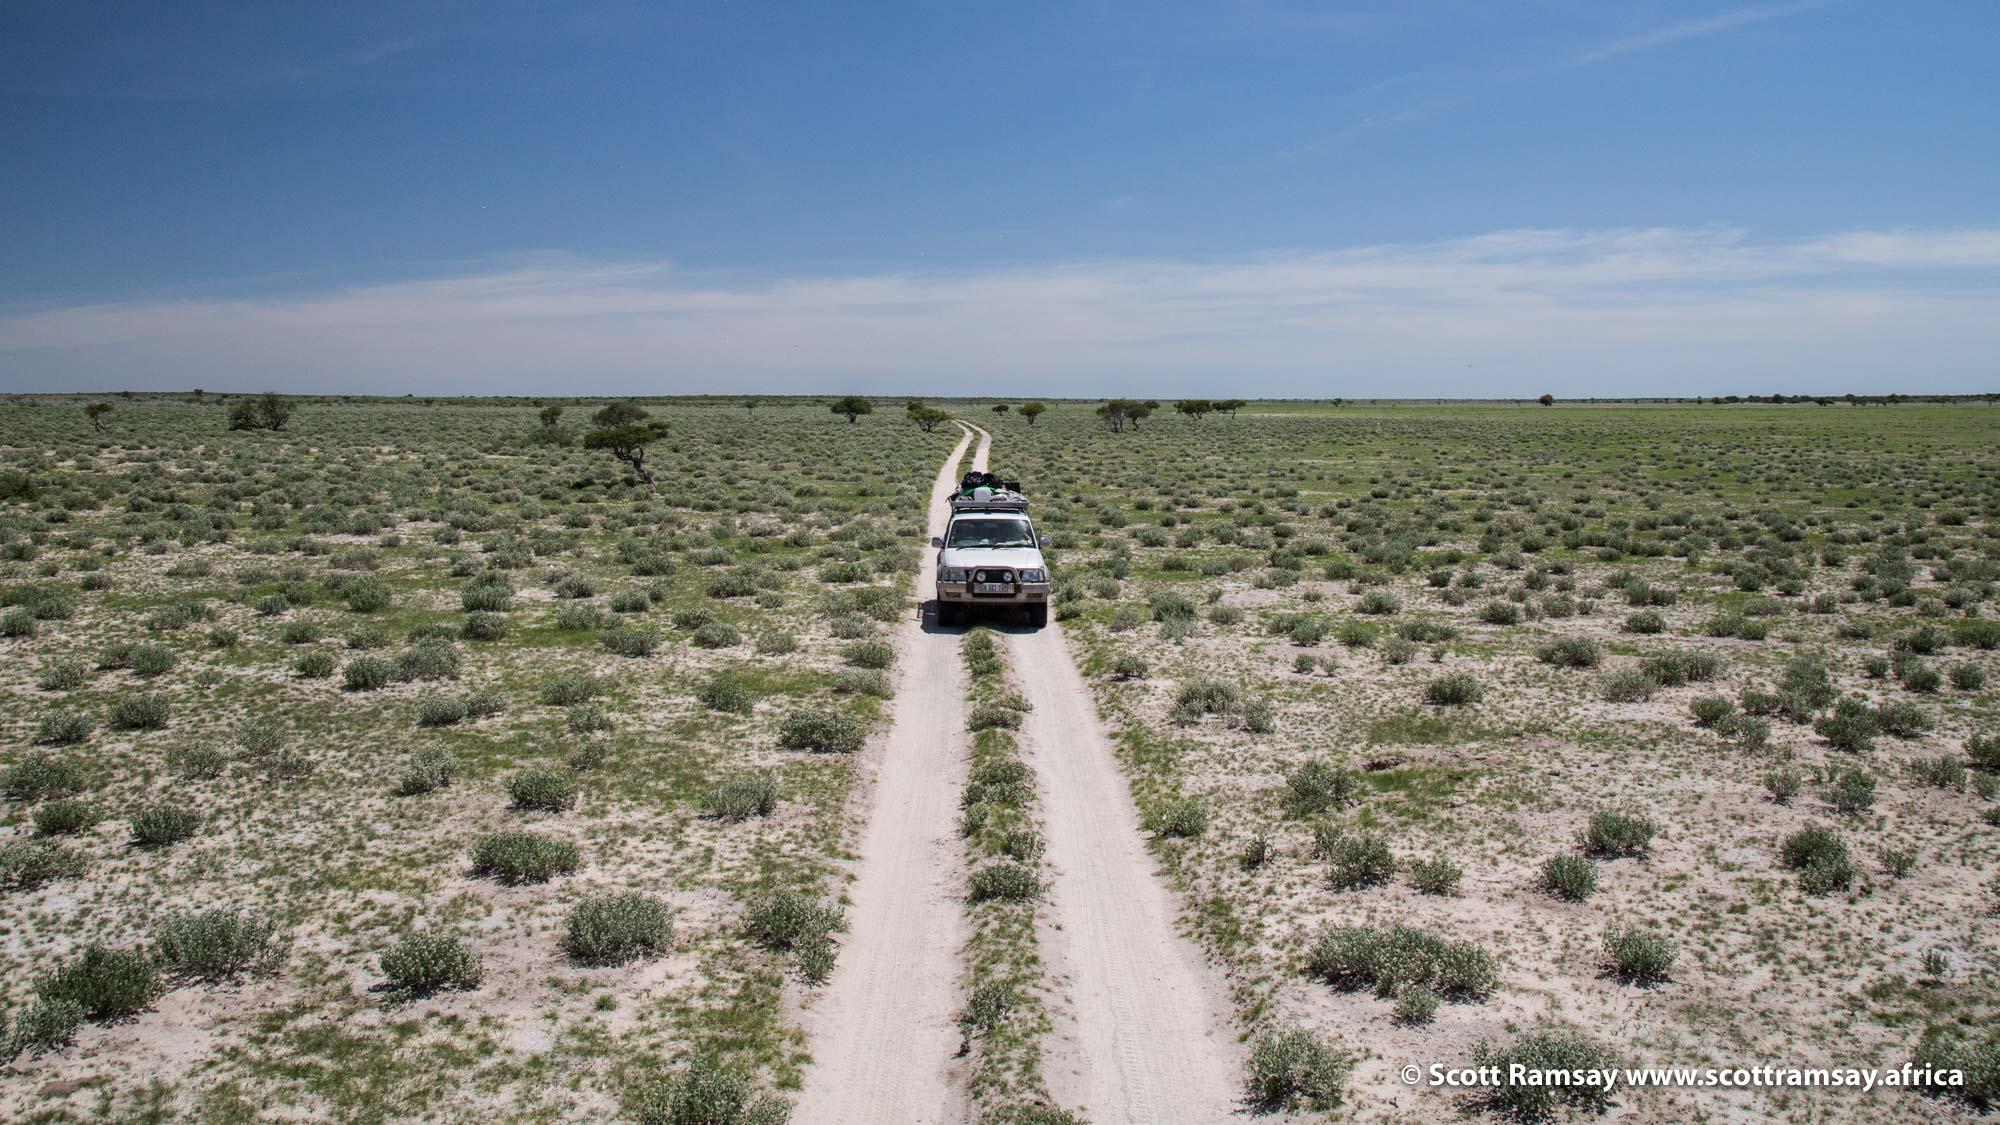 The jeep track to Piper's Pan...not much traffic here (except for dung beetles and butterflies, watch out for them!)